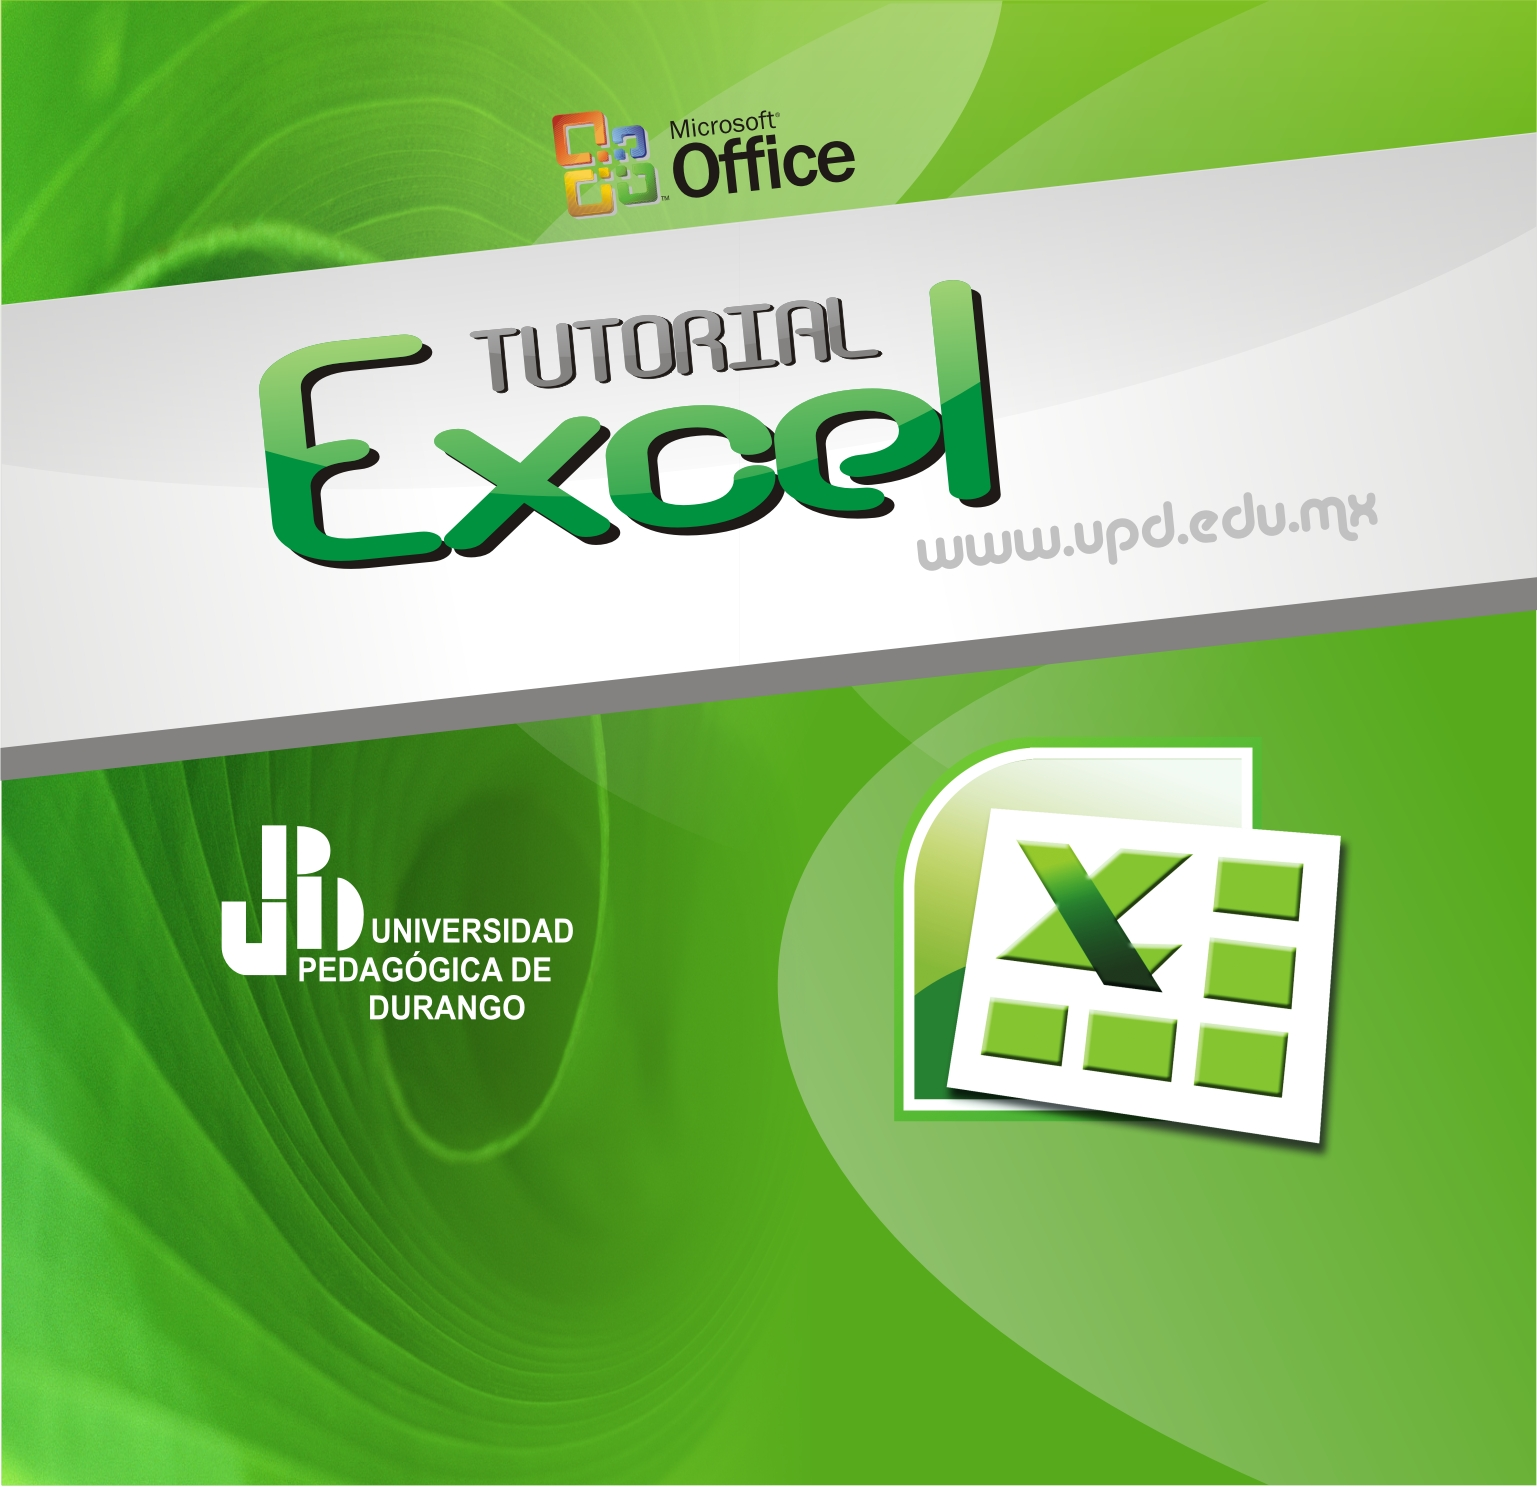 Ediblewildsus  Winsome The Basics Of Iwork Number For Ms Excel Users  Radical Hub With Exquisite Tutorexcel With Comely How To Get Stock Quotes In Excel Also Making Gantt Chart In Excel In Addition Excel Free For Mac And Spreadsheet Template Excel As Well As Shortcuts For Excel  Additionally Excel Python Plugin From Radicalhubcom With Ediblewildsus  Exquisite The Basics Of Iwork Number For Ms Excel Users  Radical Hub With Comely Tutorexcel And Winsome How To Get Stock Quotes In Excel Also Making Gantt Chart In Excel In Addition Excel Free For Mac From Radicalhubcom